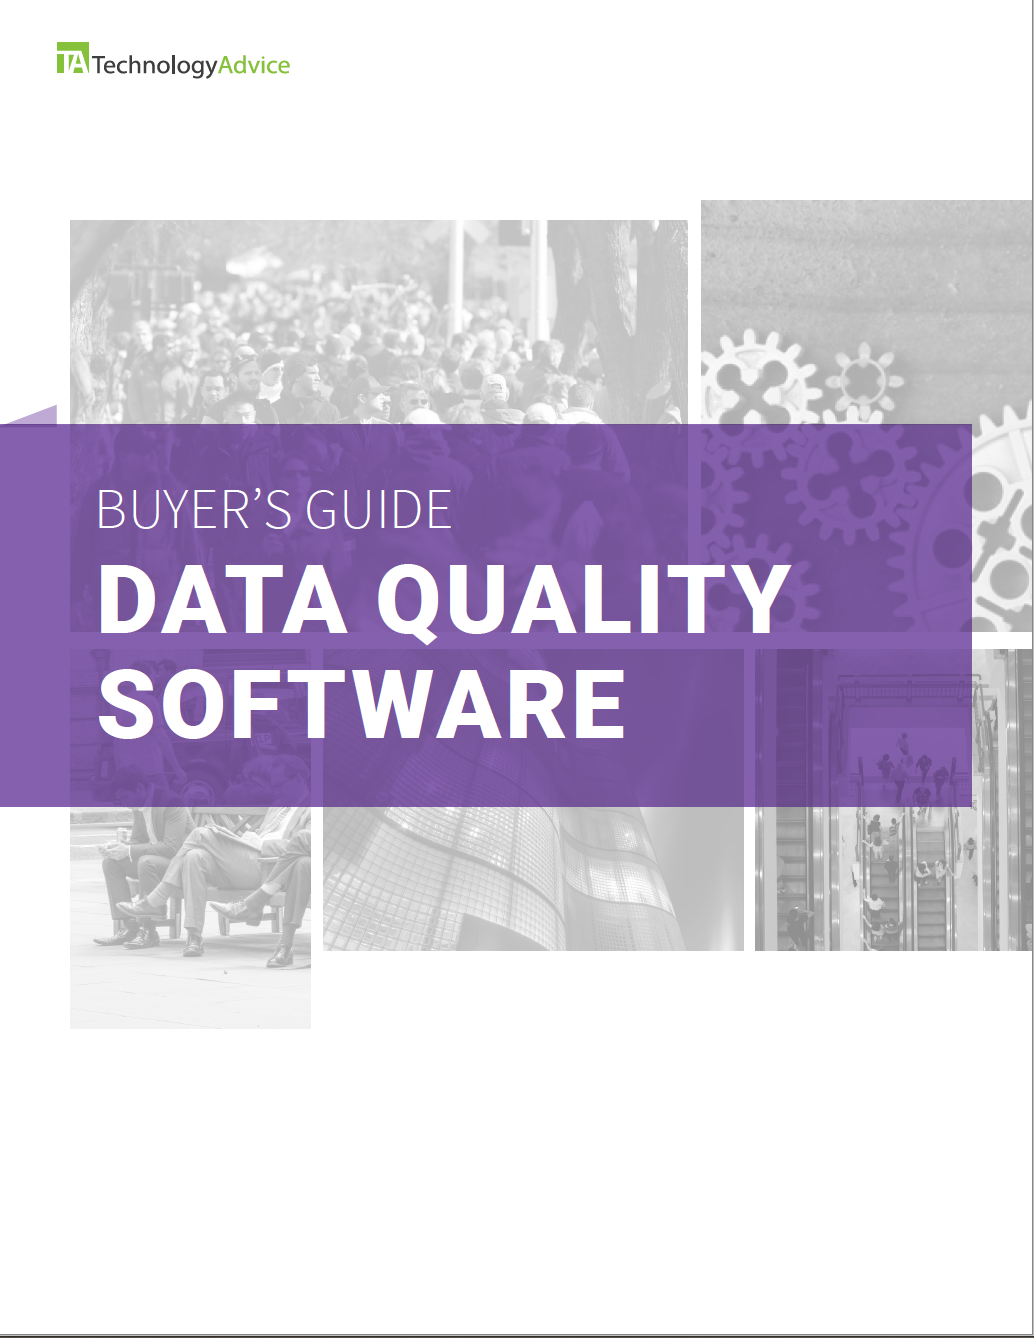 Buyer's Guide to Data Quality Software